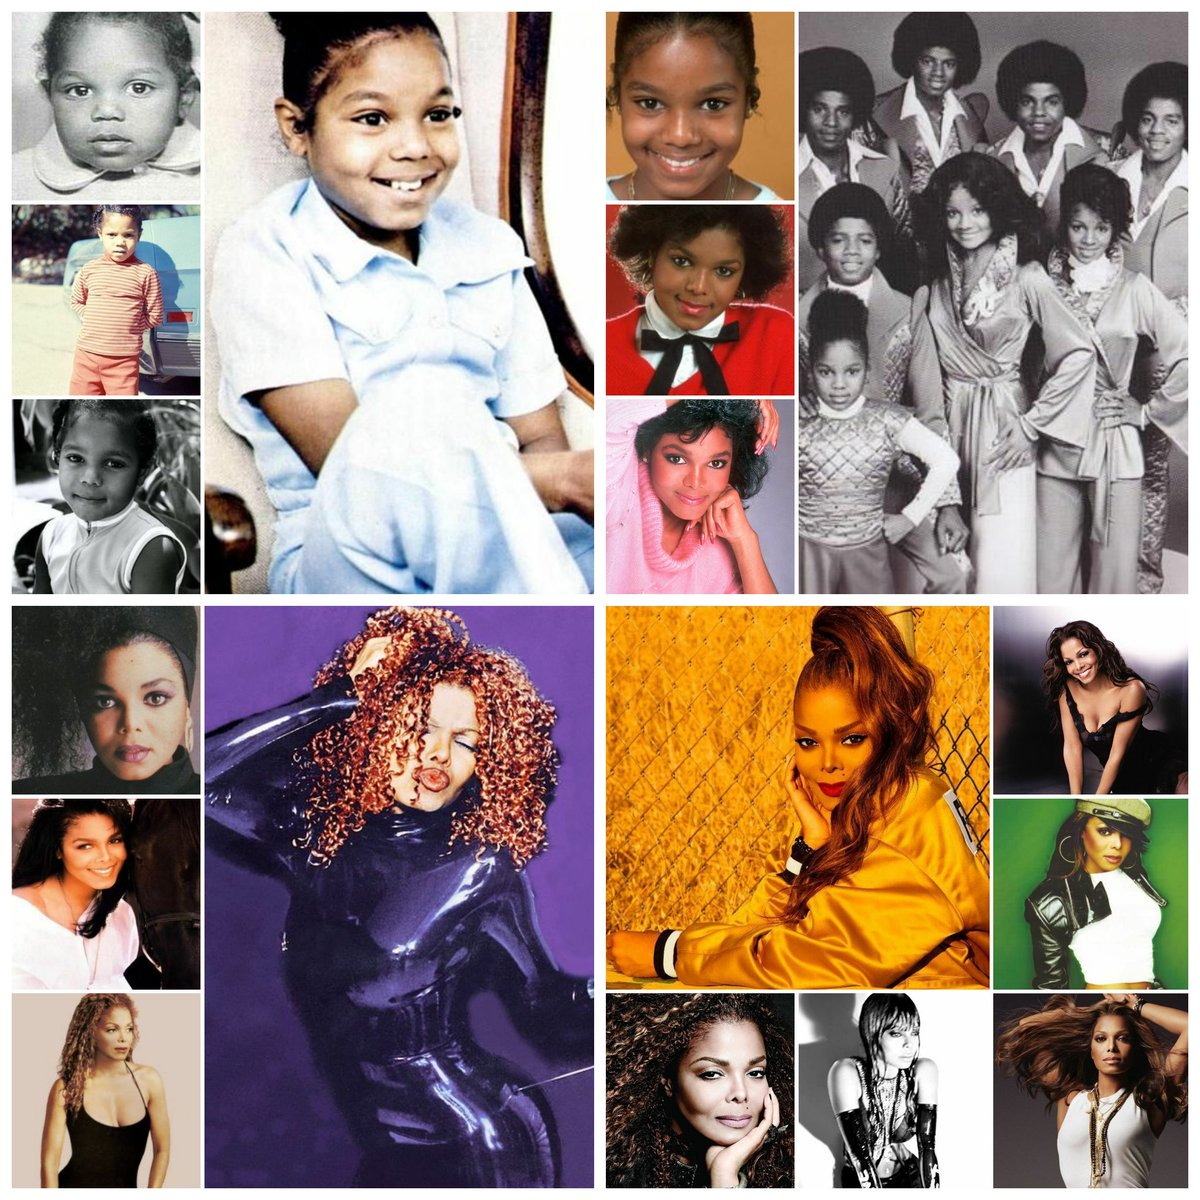 Happy birthday @JanetJackson  Today we celebrate your life &amp; light. May God Continue to bless you&amp; walk w you every step of the way. #Janet52 #HappyBirthdayJanet #ICON_JANET <br>http://pic.twitter.com/X78gpKY1xG